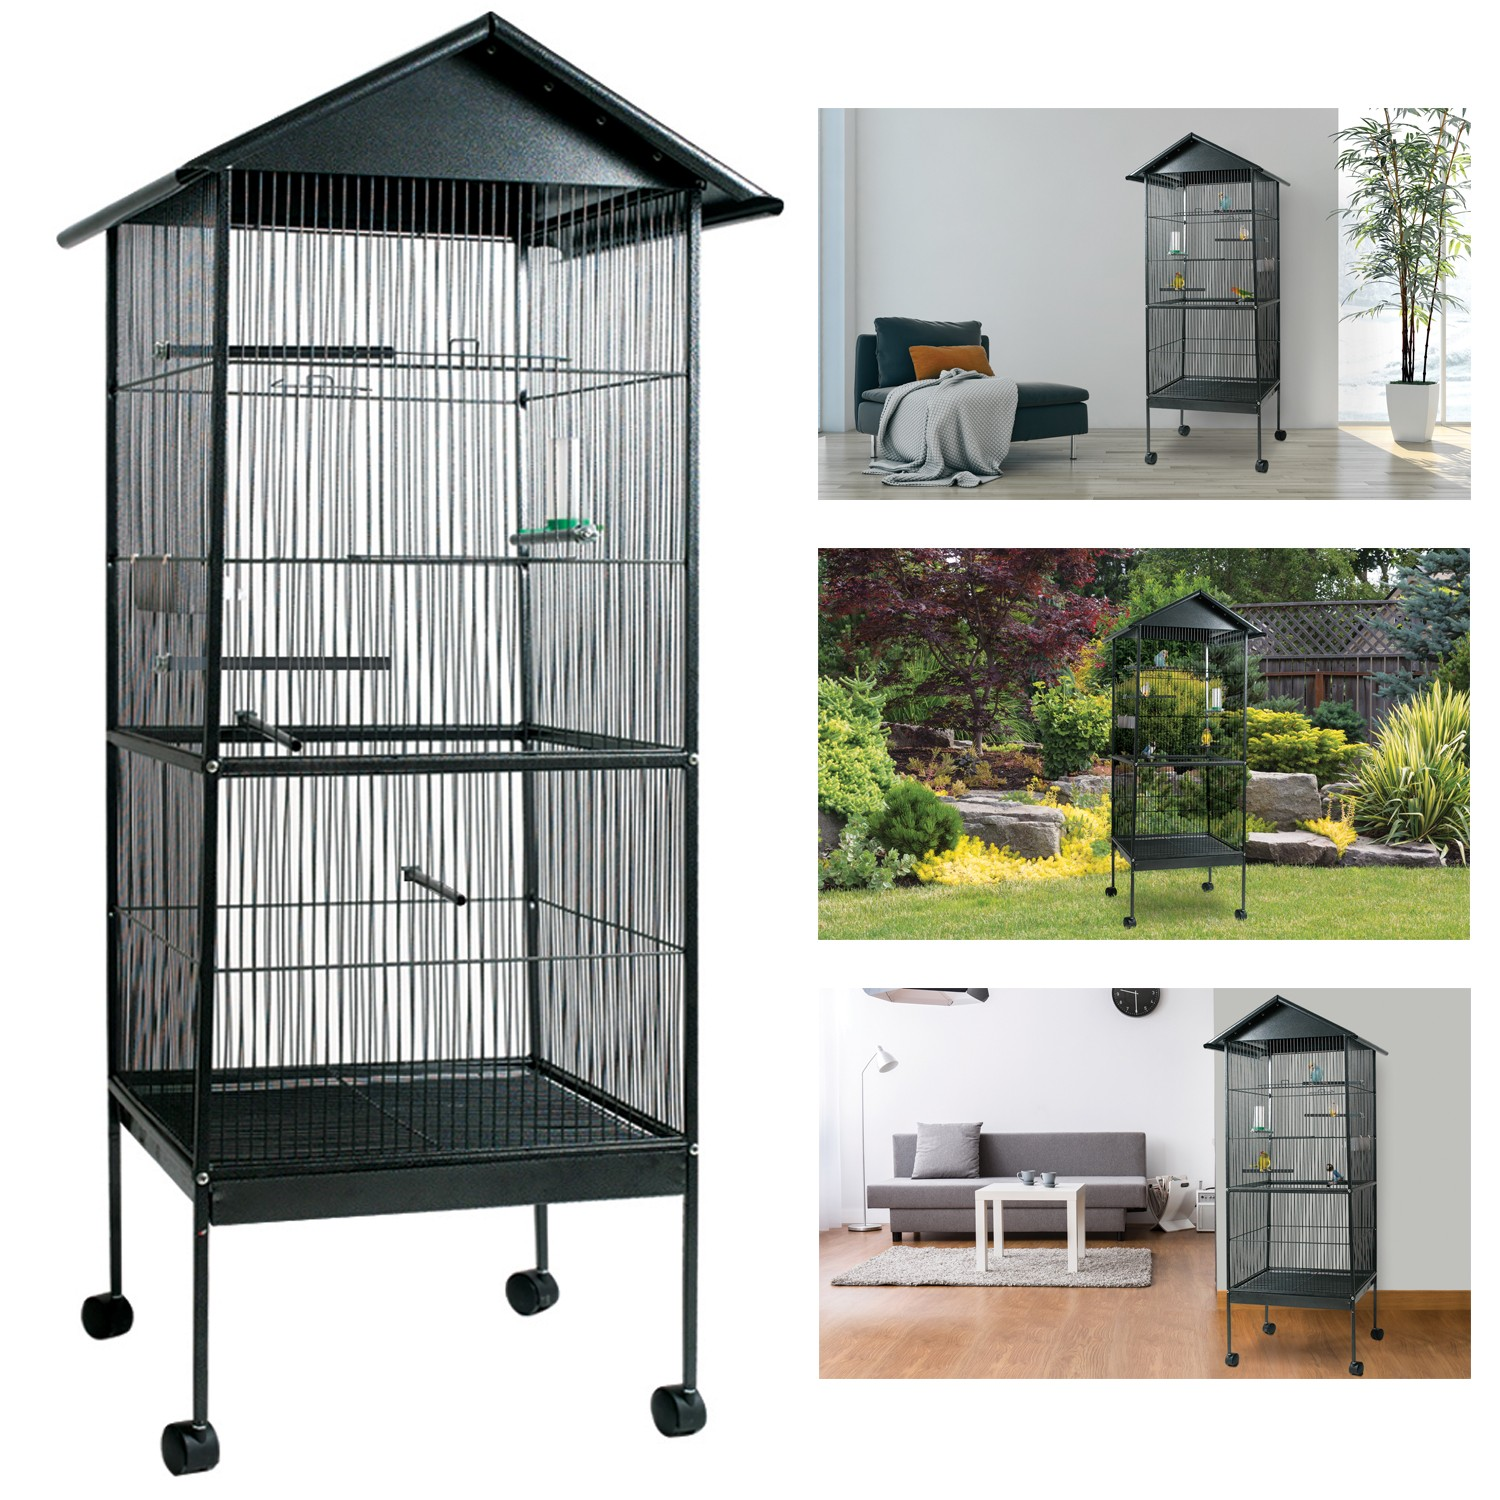 voli re cage oiseaux avec toit 4 roues en m tal pour canaris per. Black Bedroom Furniture Sets. Home Design Ideas